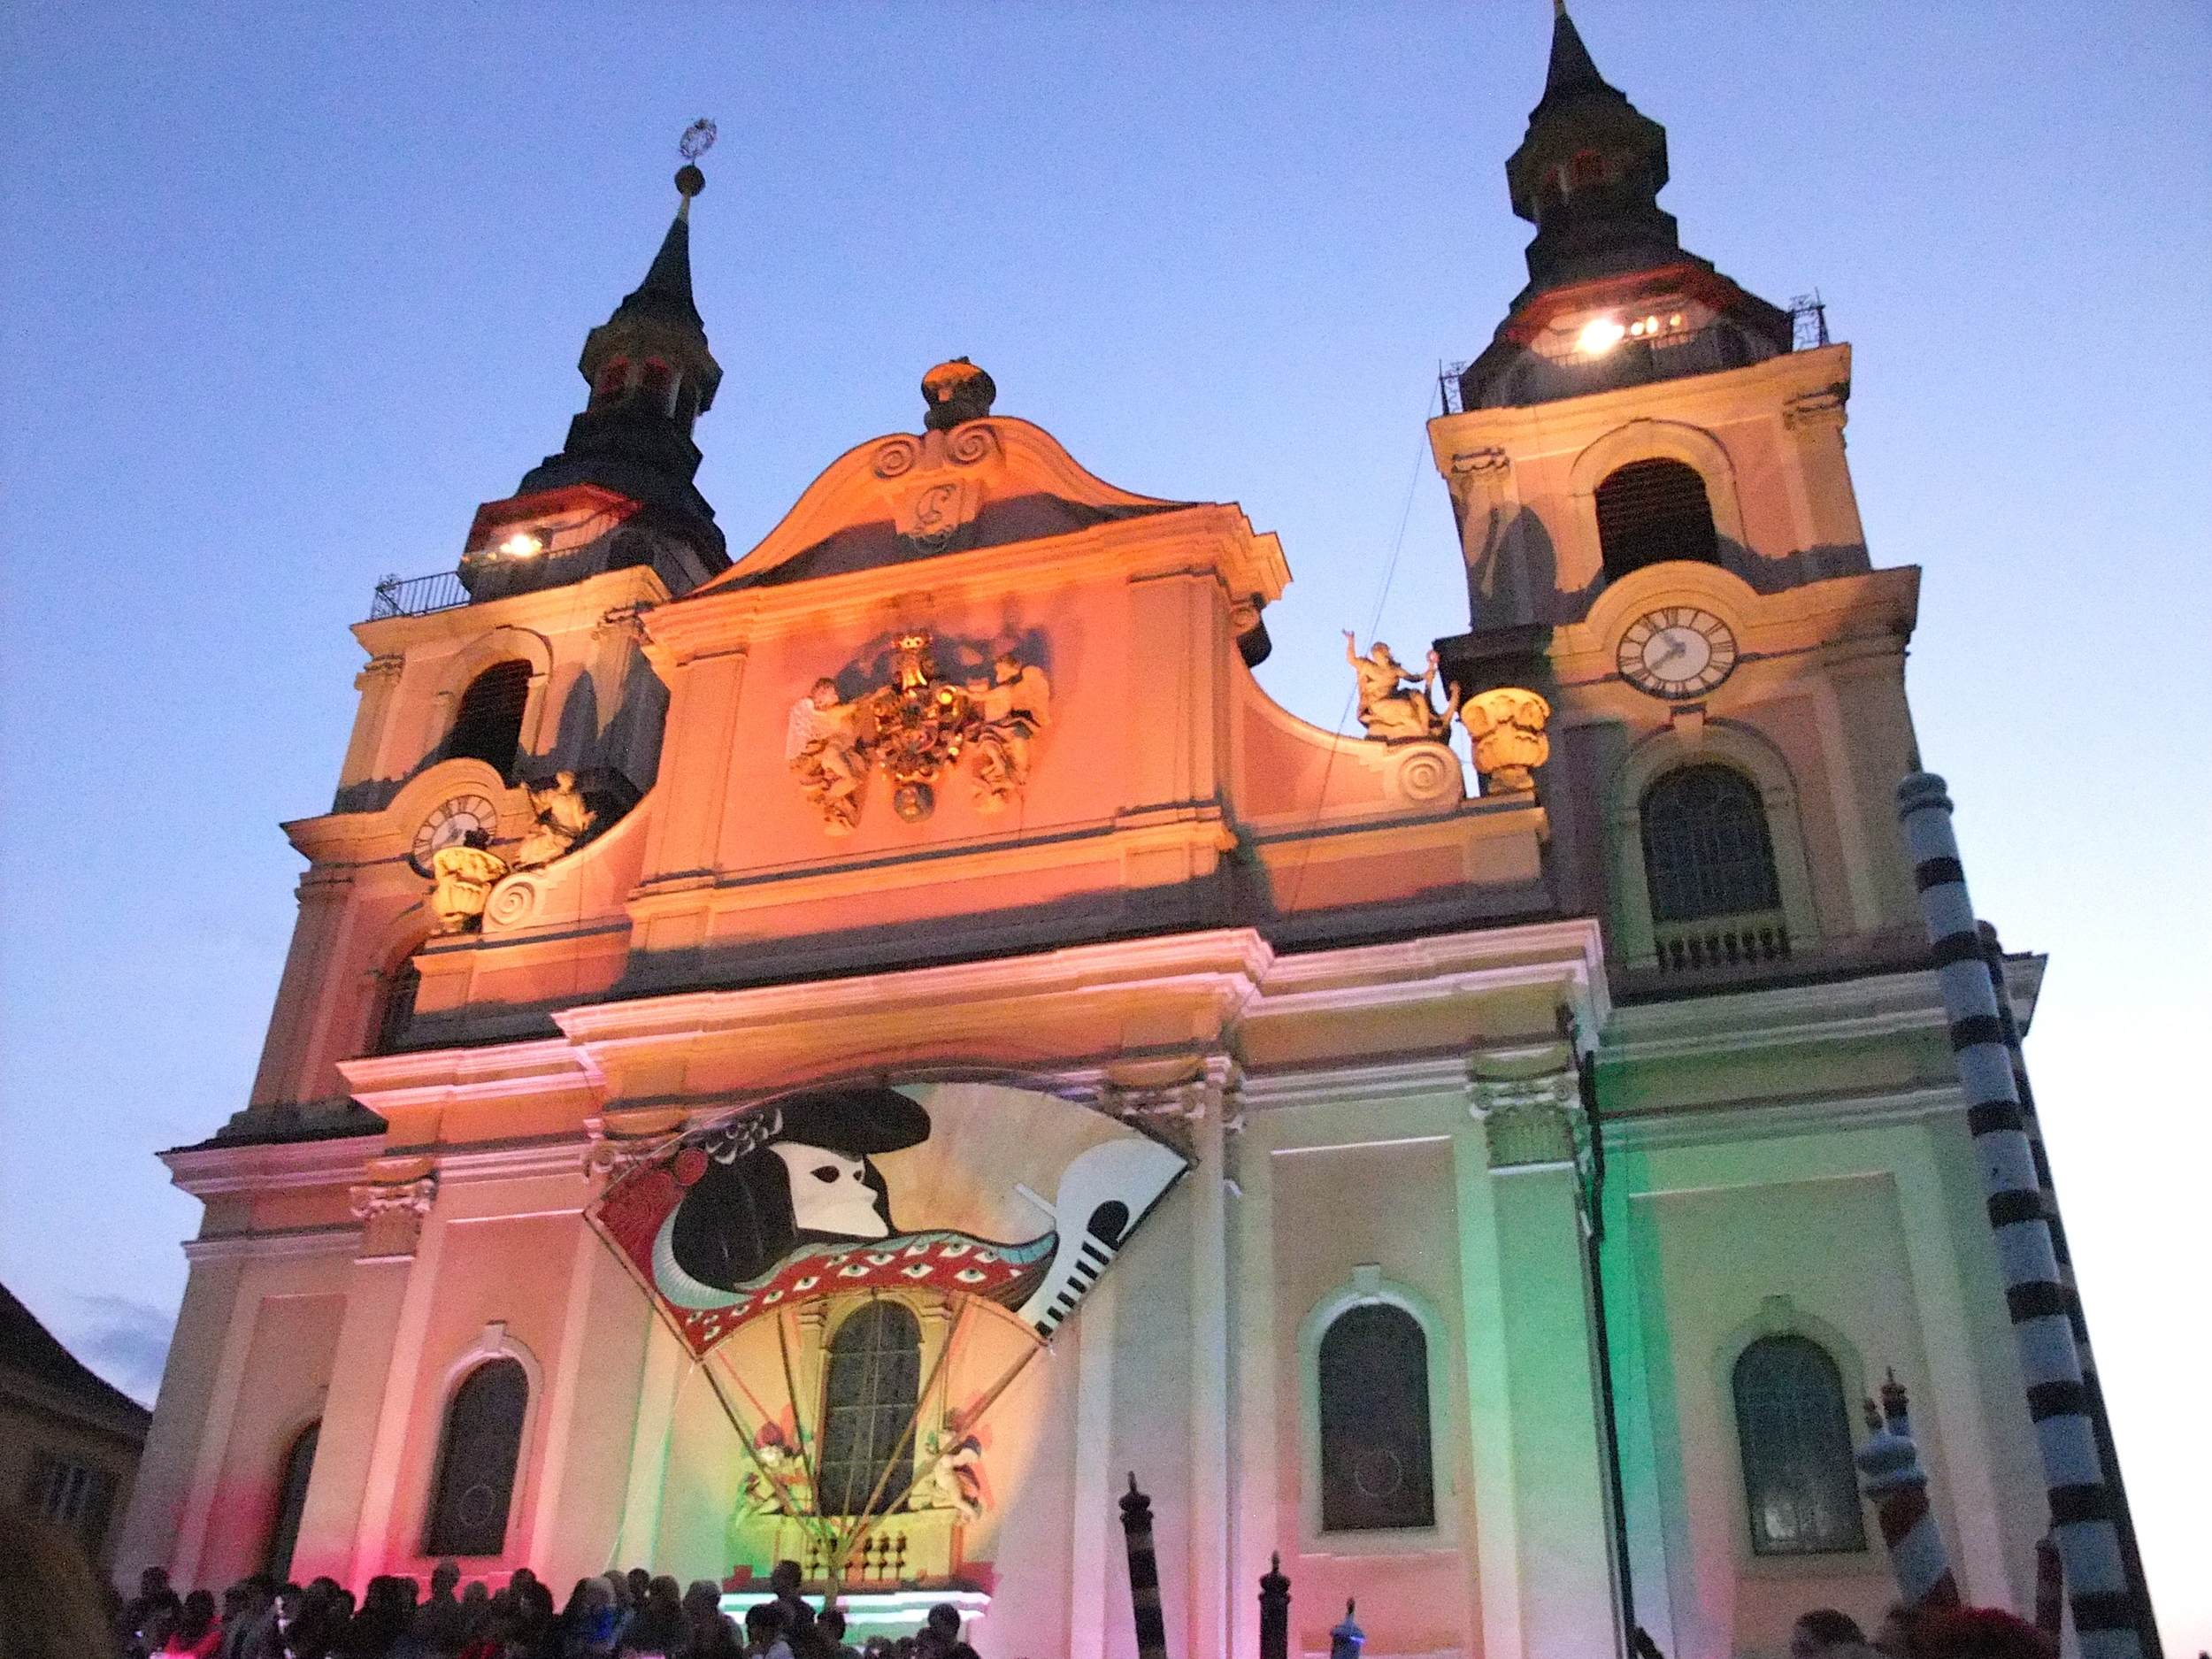 Stadtkirche  Ludwigsburg all decked out for the festival